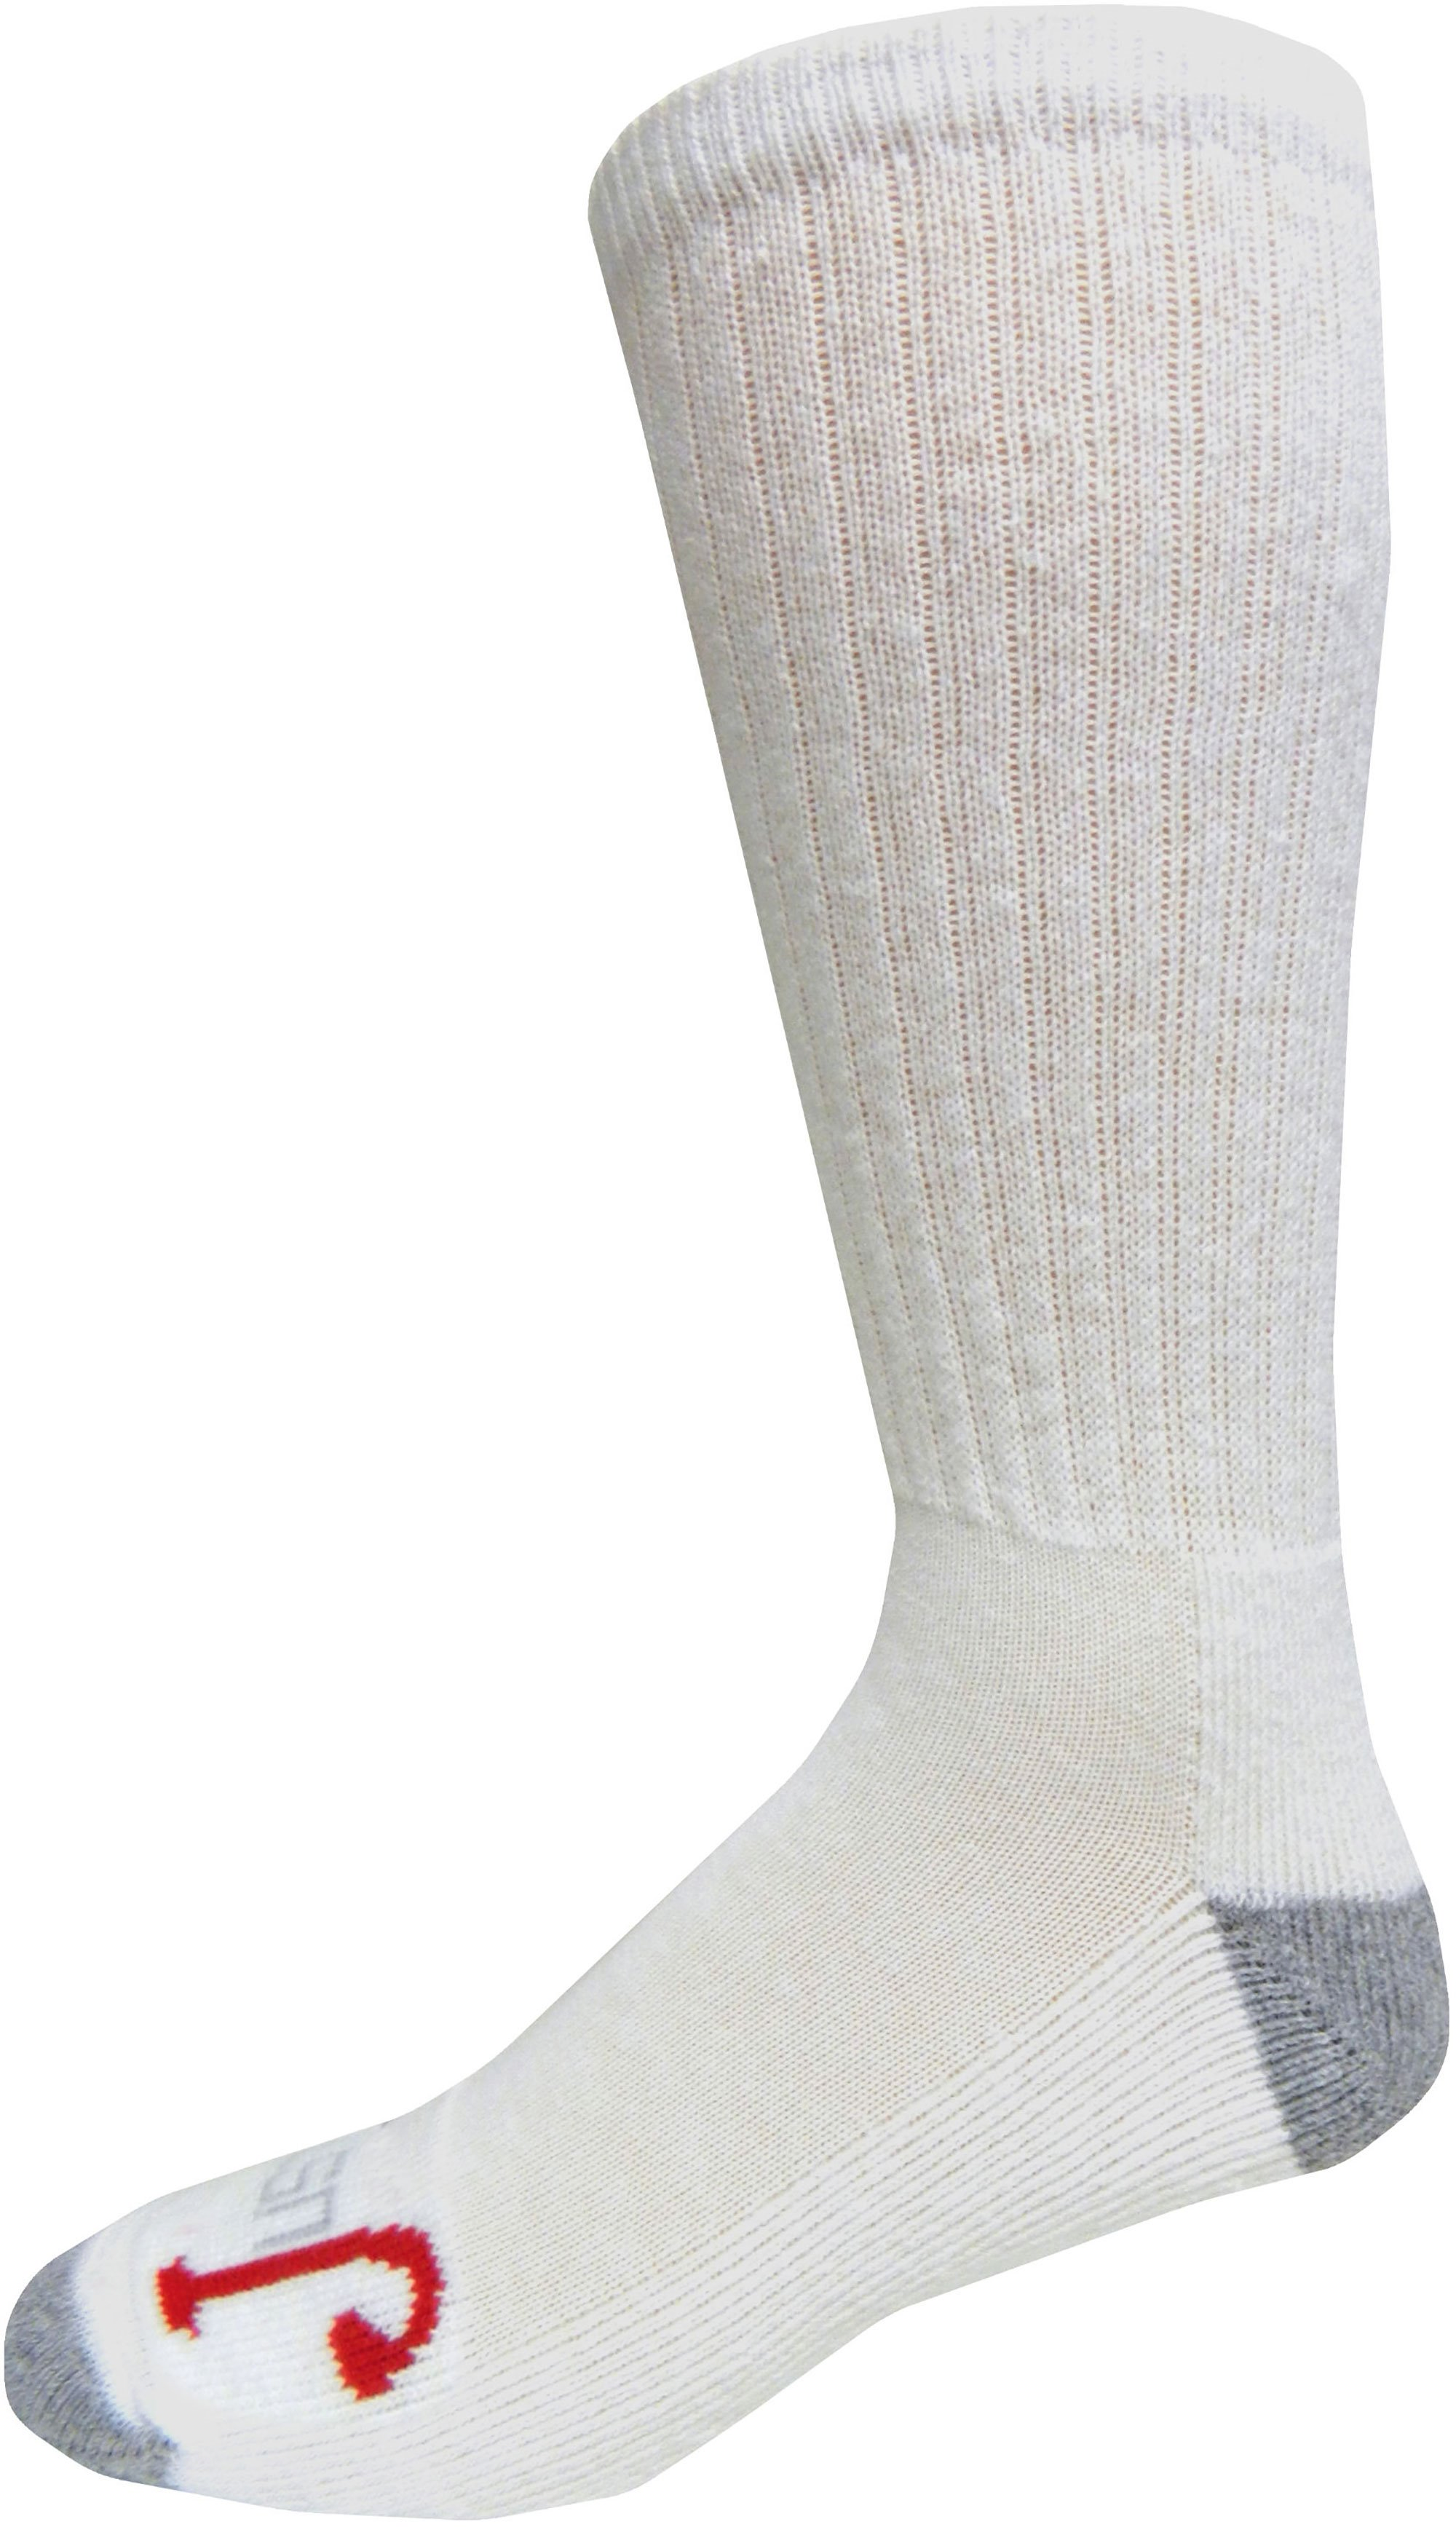 Product Image for style SOX9503TH